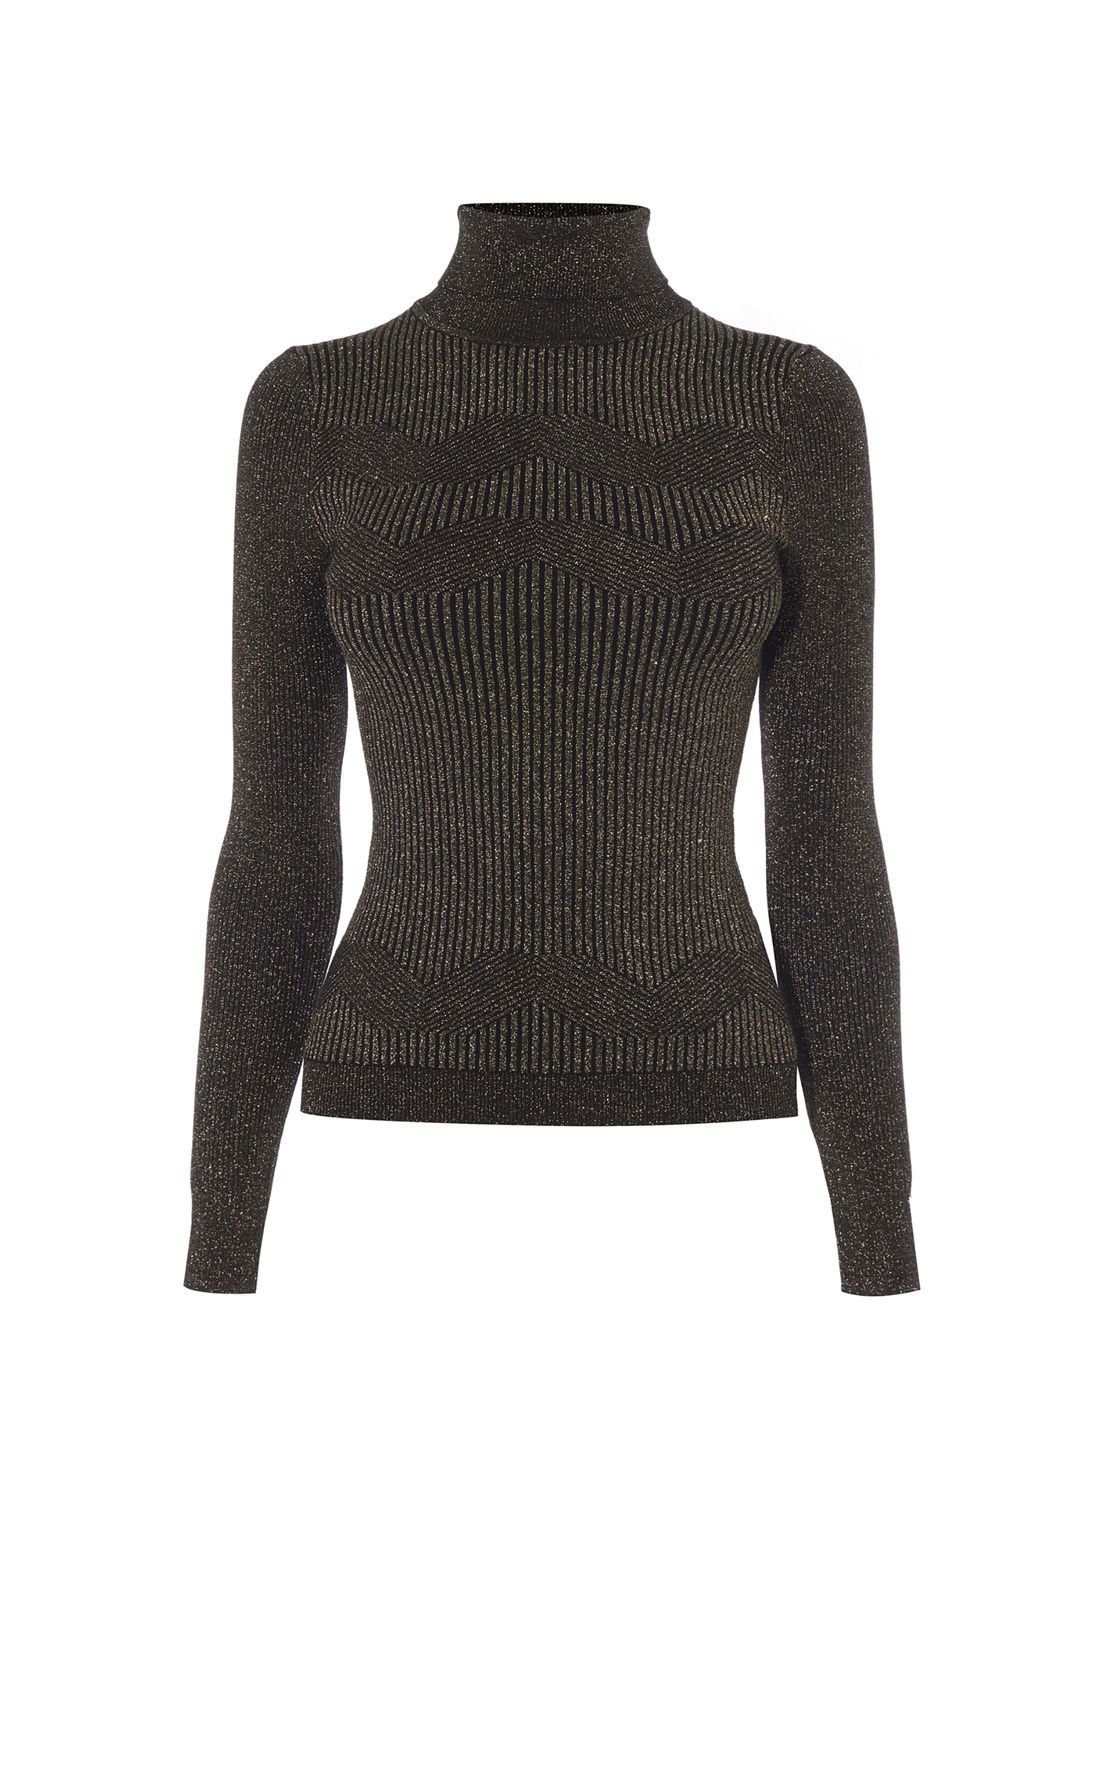 58dc646ffb4 Metallic Turtleneck Jumper | Karen Millen (KB109) | LookBook ...